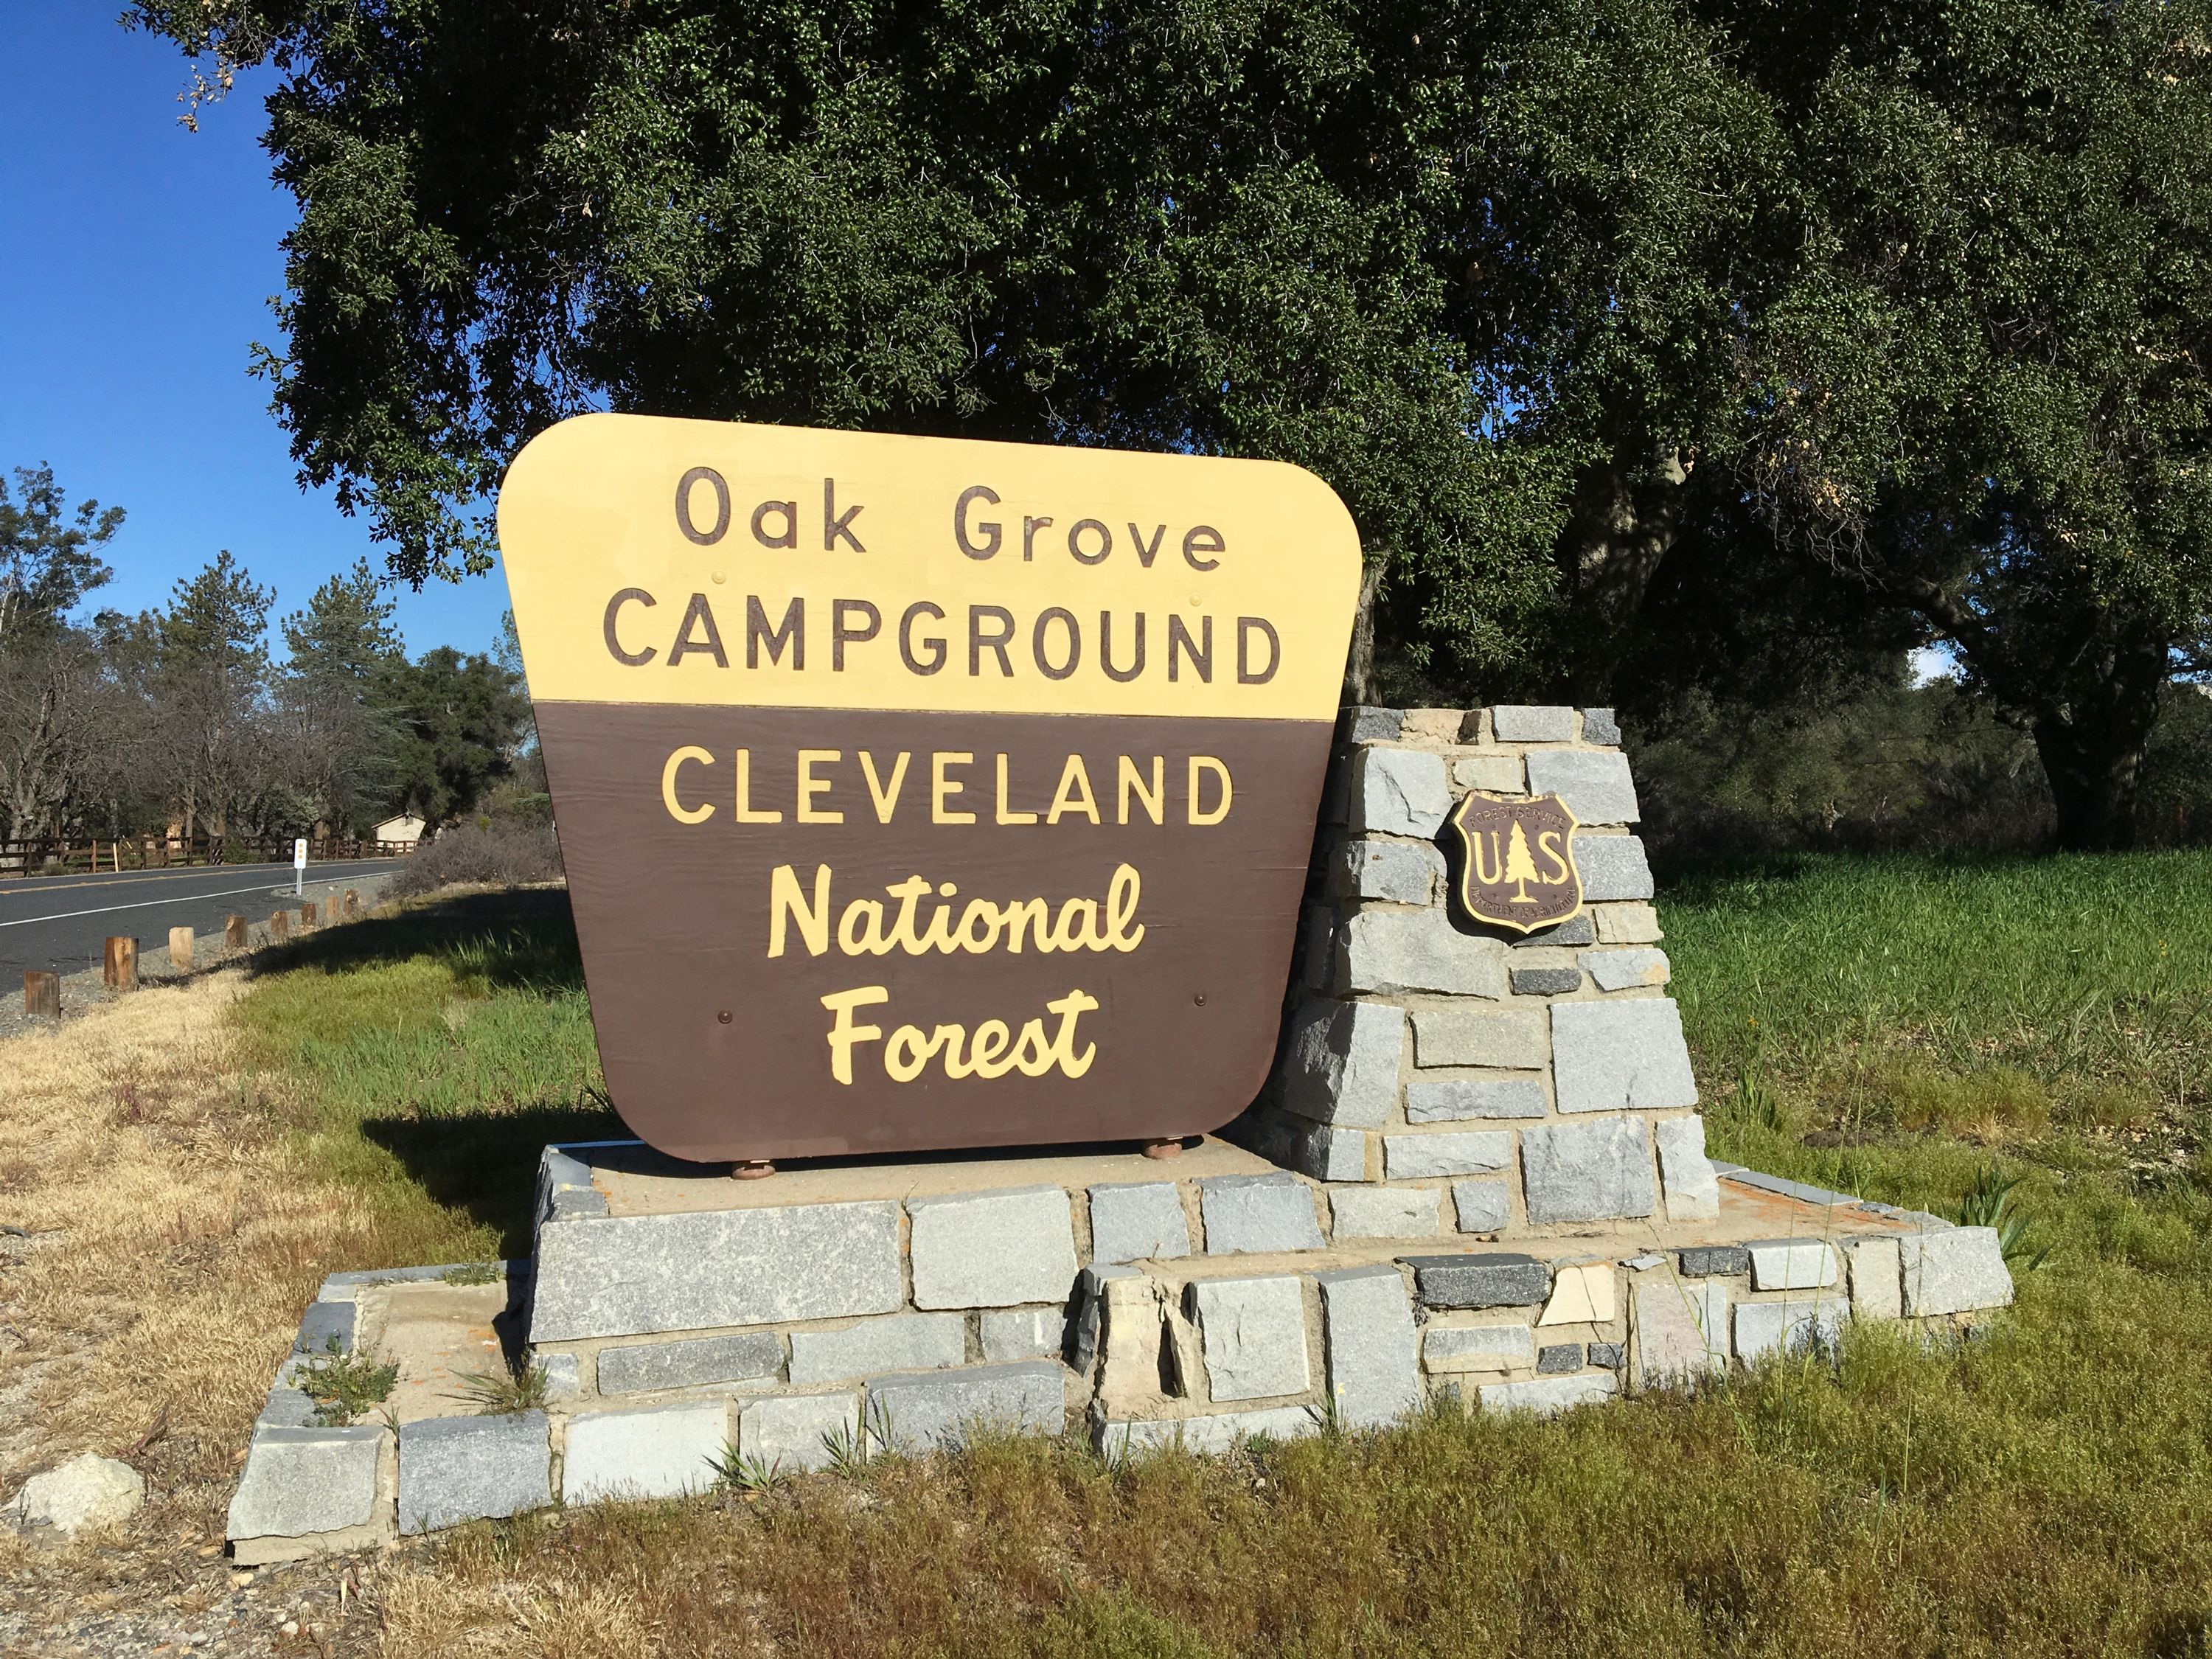 Cleveland National Forest sign